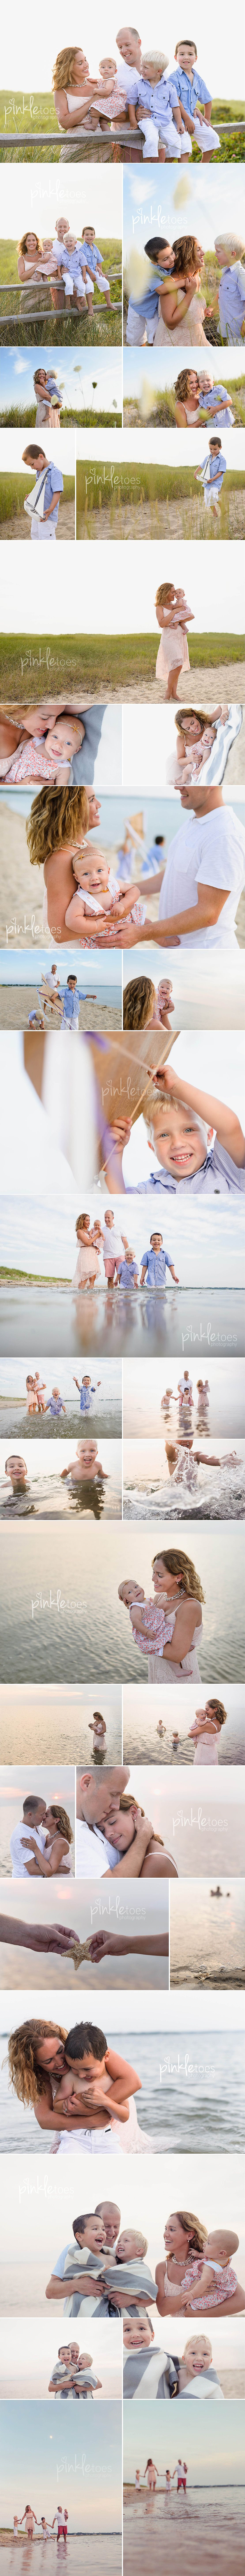 sm-pinkle-toes-best-unique-beautiful-beach-port-cape-cod-austin-family-lifestyle-candid-photography